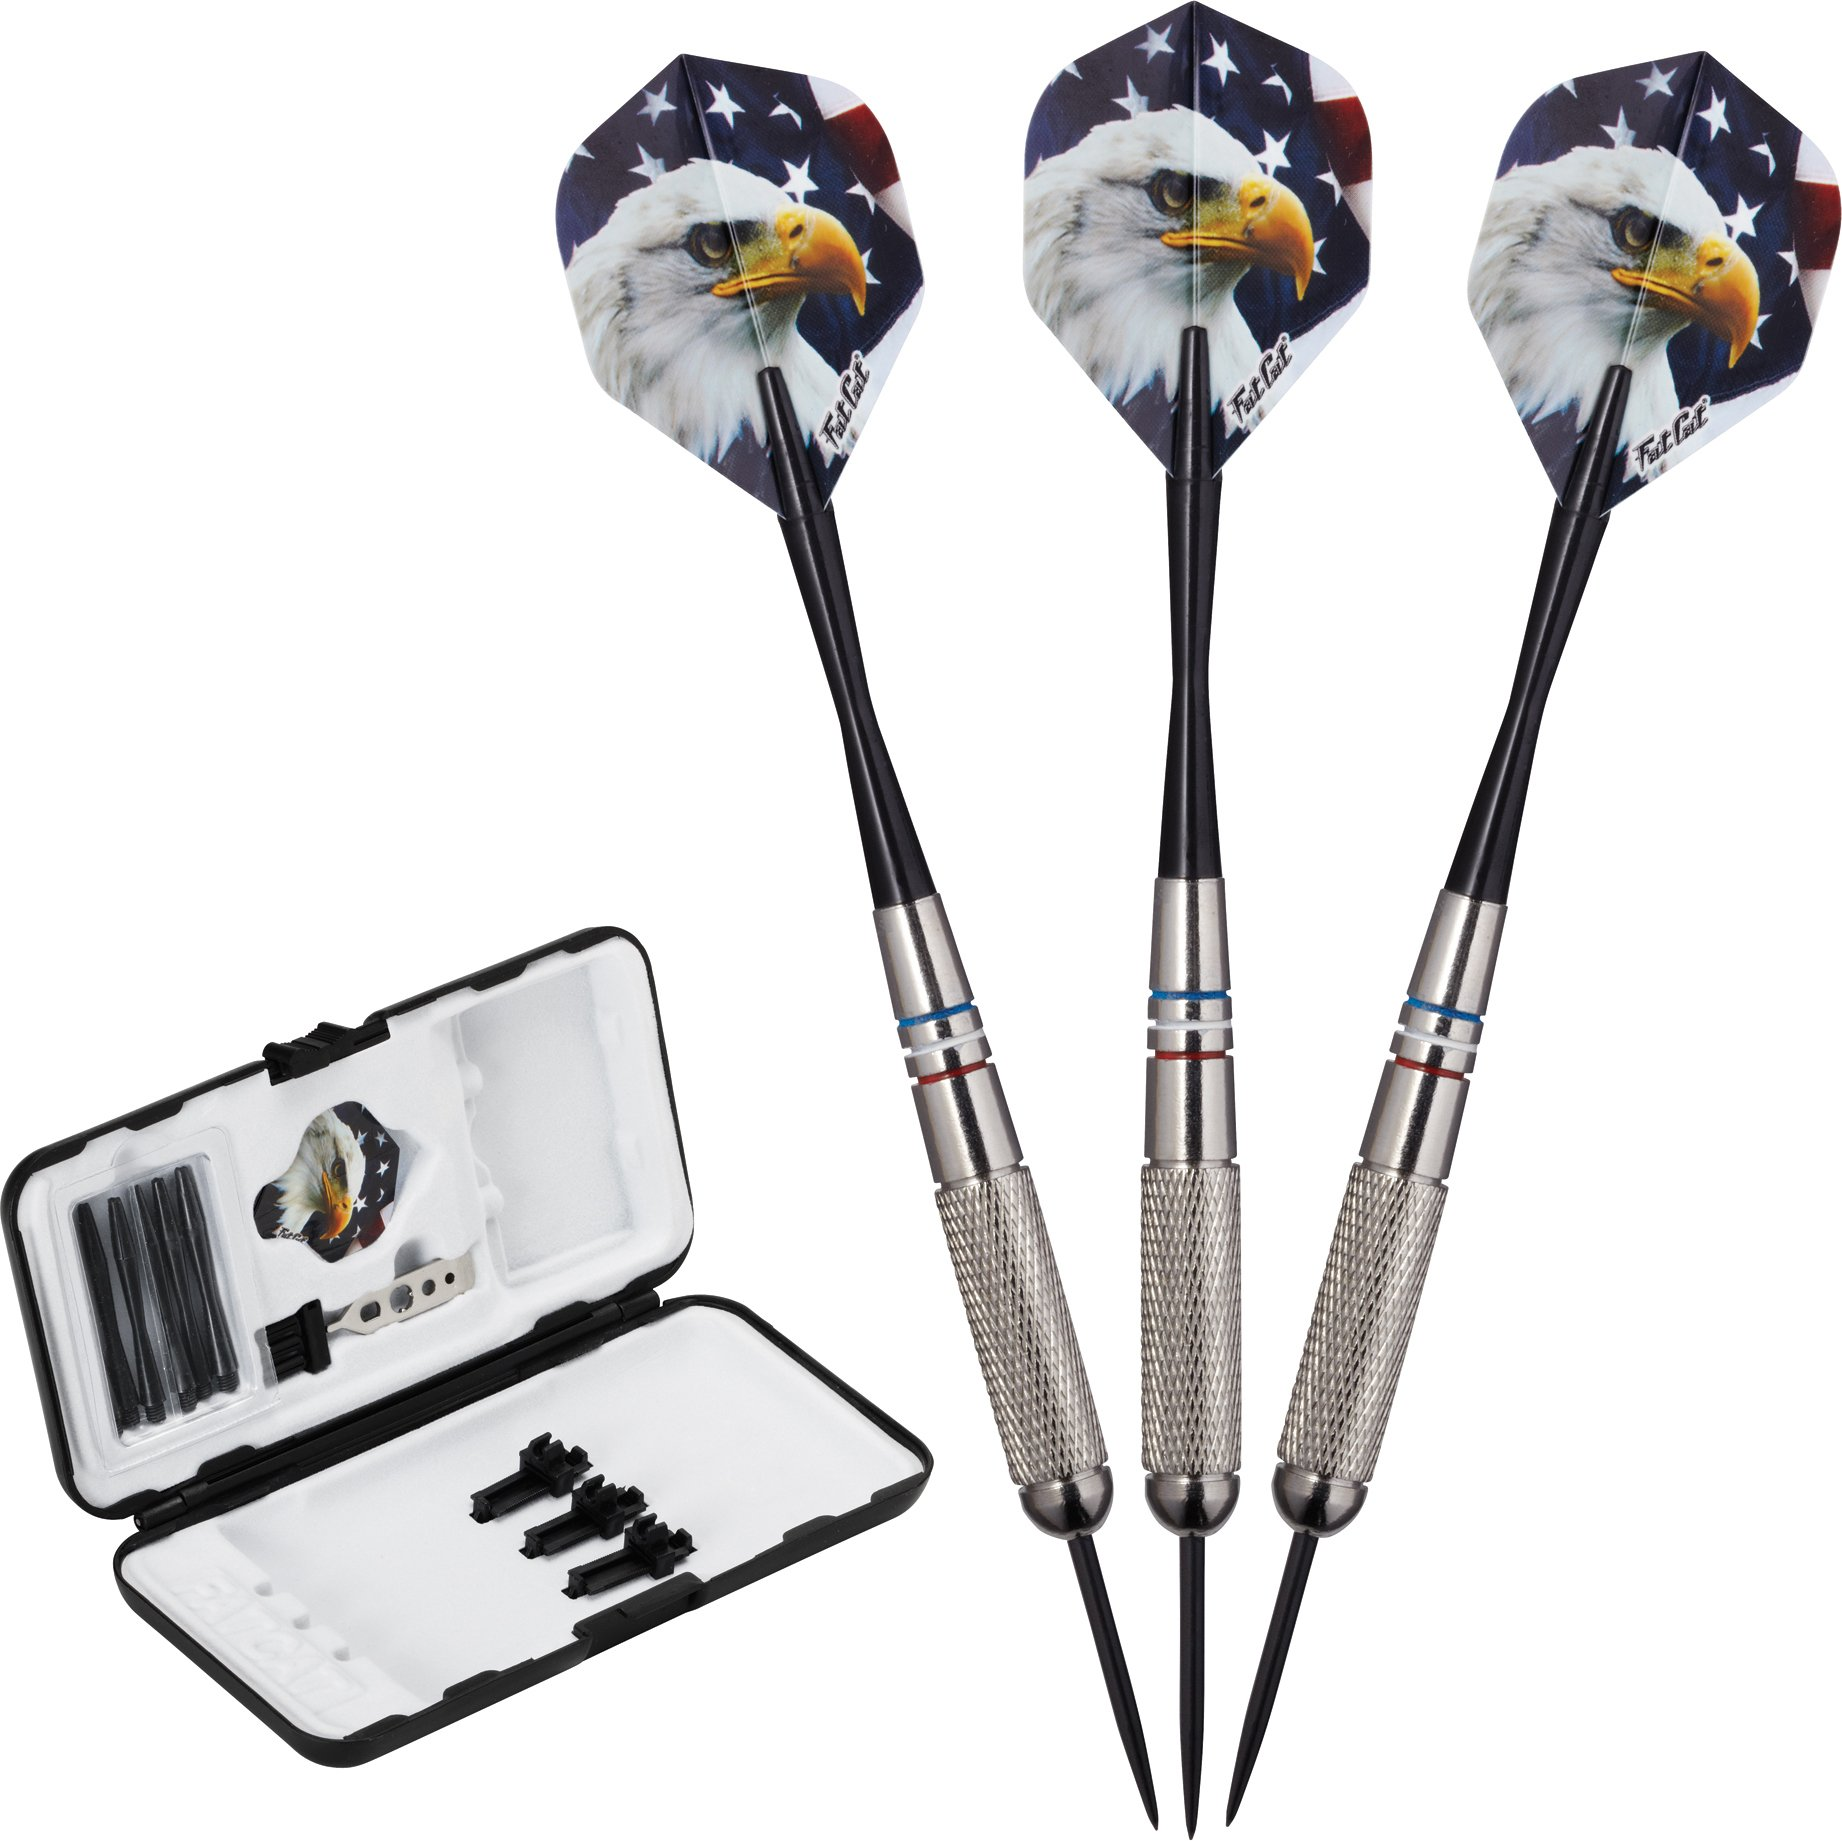 Fat Cat Support Our Troops Steel Tip Darts with Storage/Travel Case, 23 Grams by Fat Cat by GLD Products